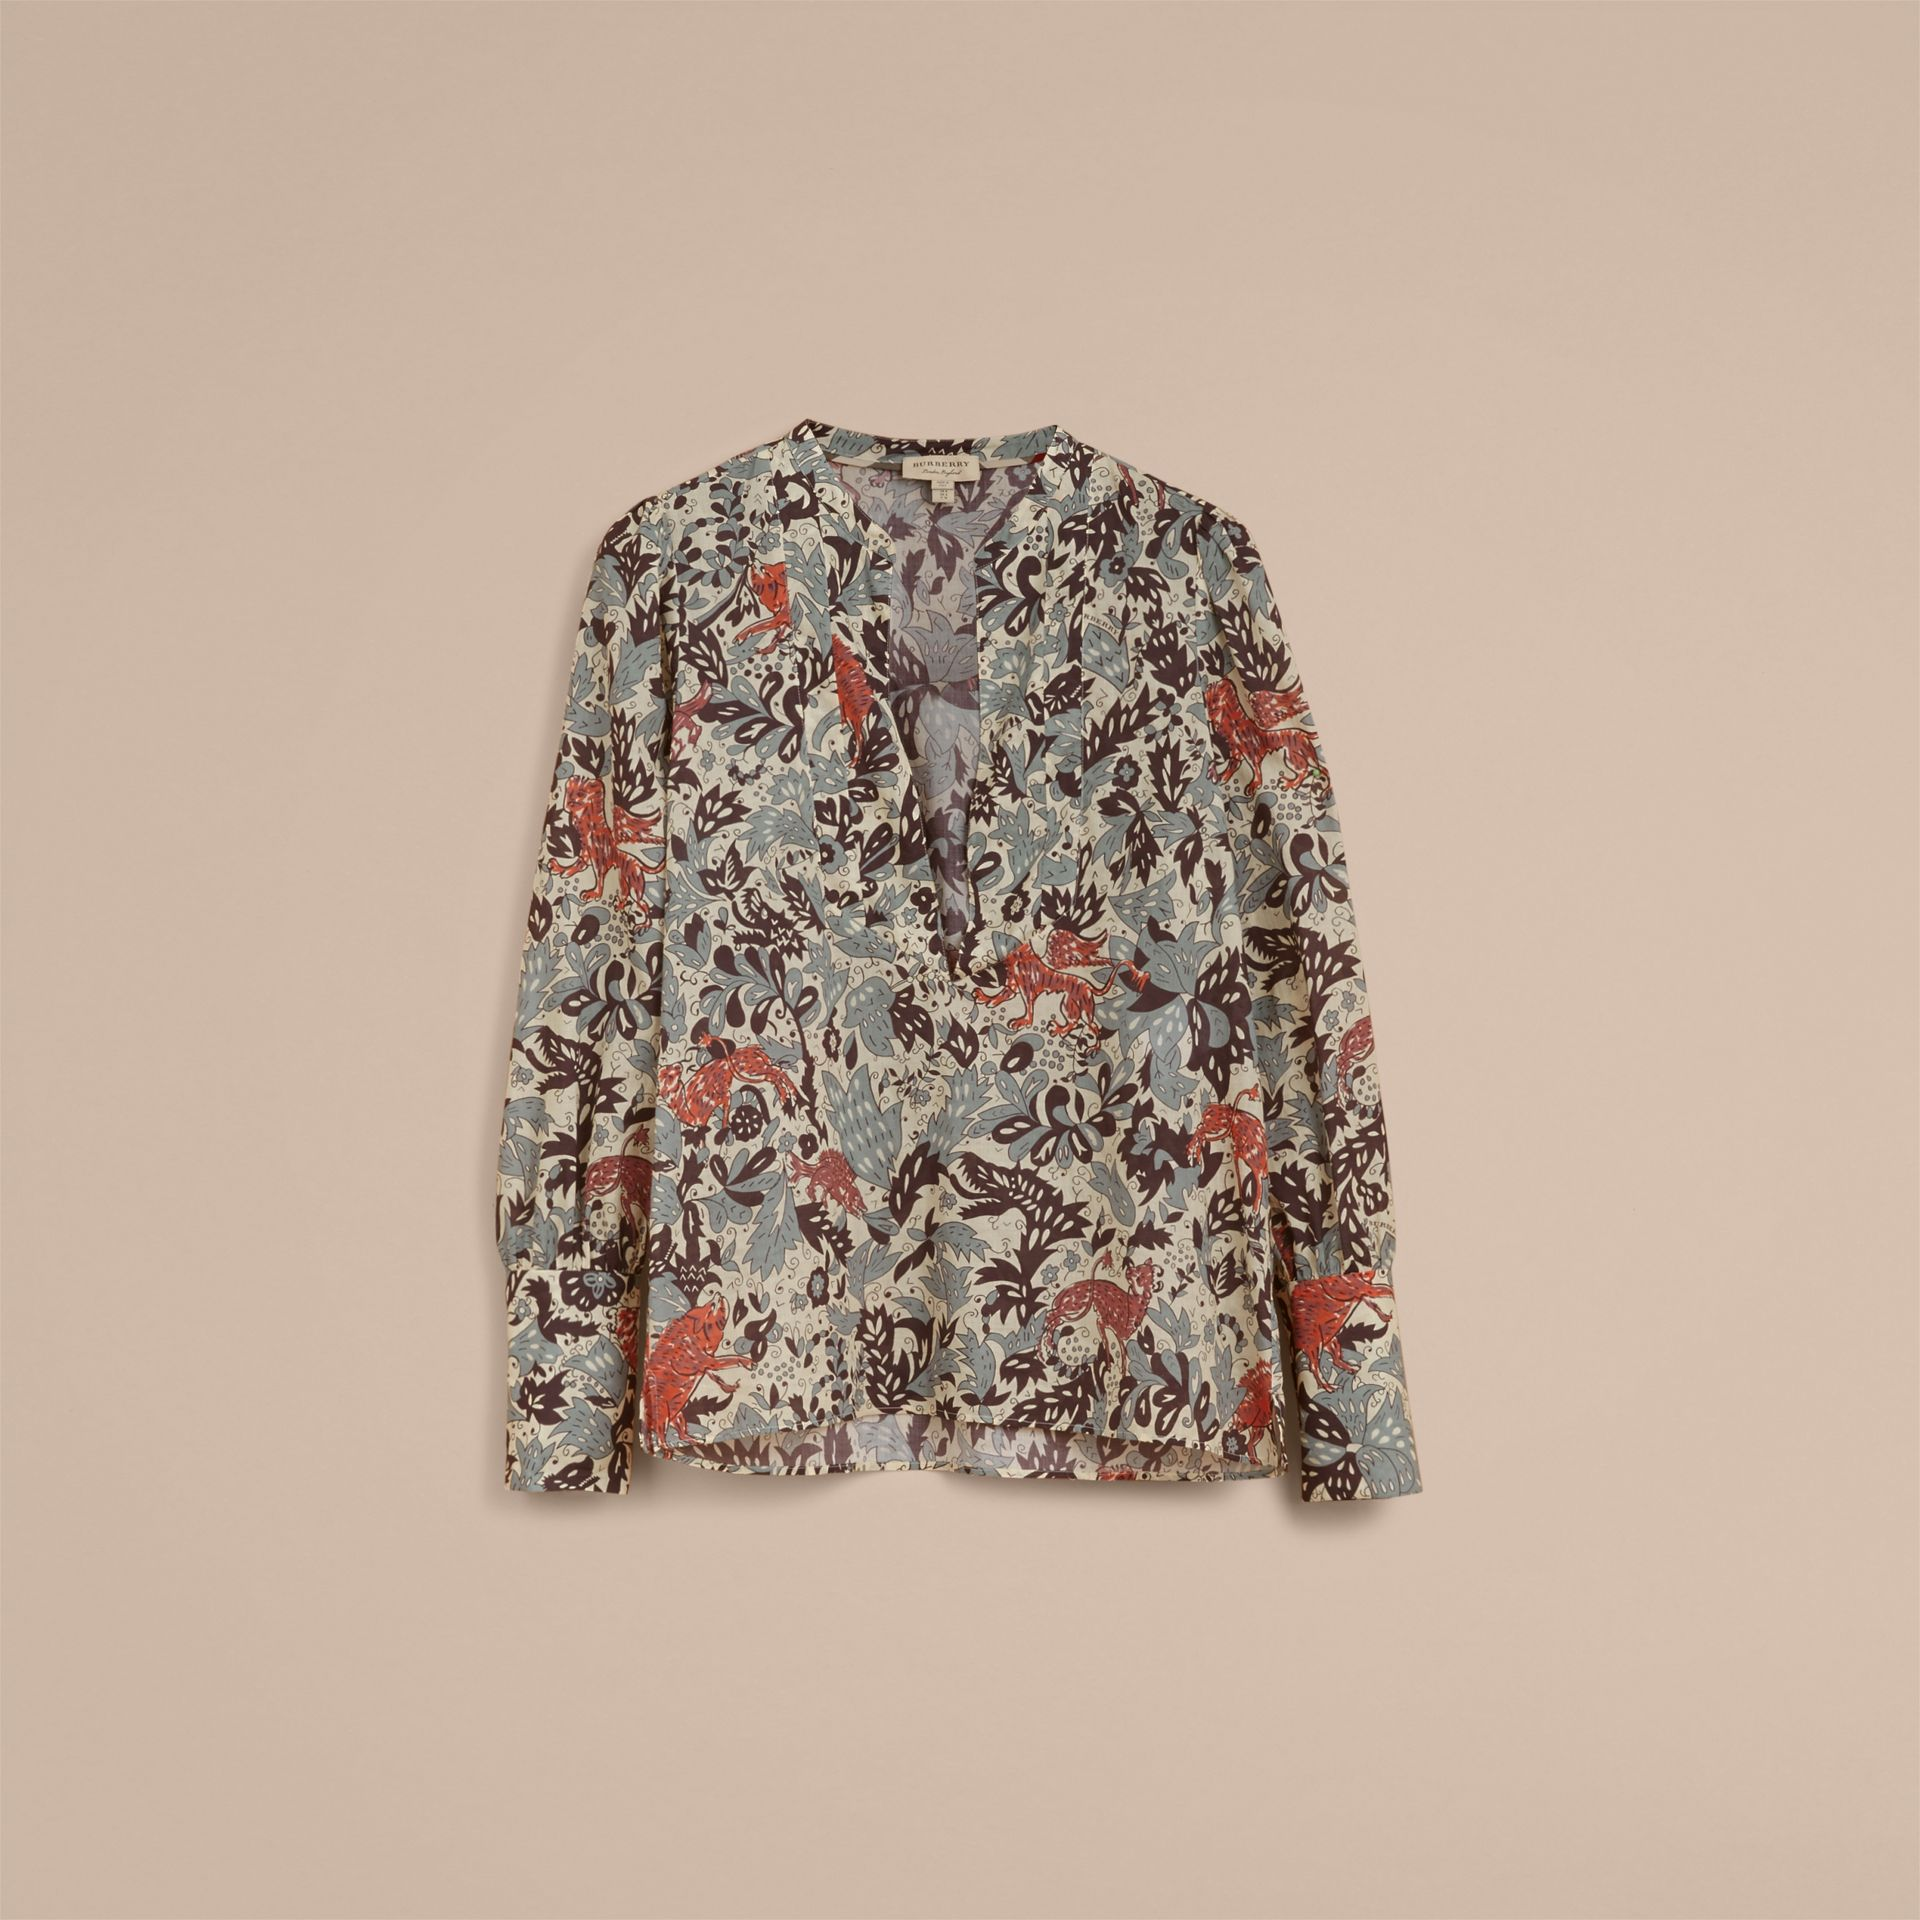 Beasts Print Cotton Tunic Shirt in Pale Blue Carbon - Women | Burberry - gallery image 4